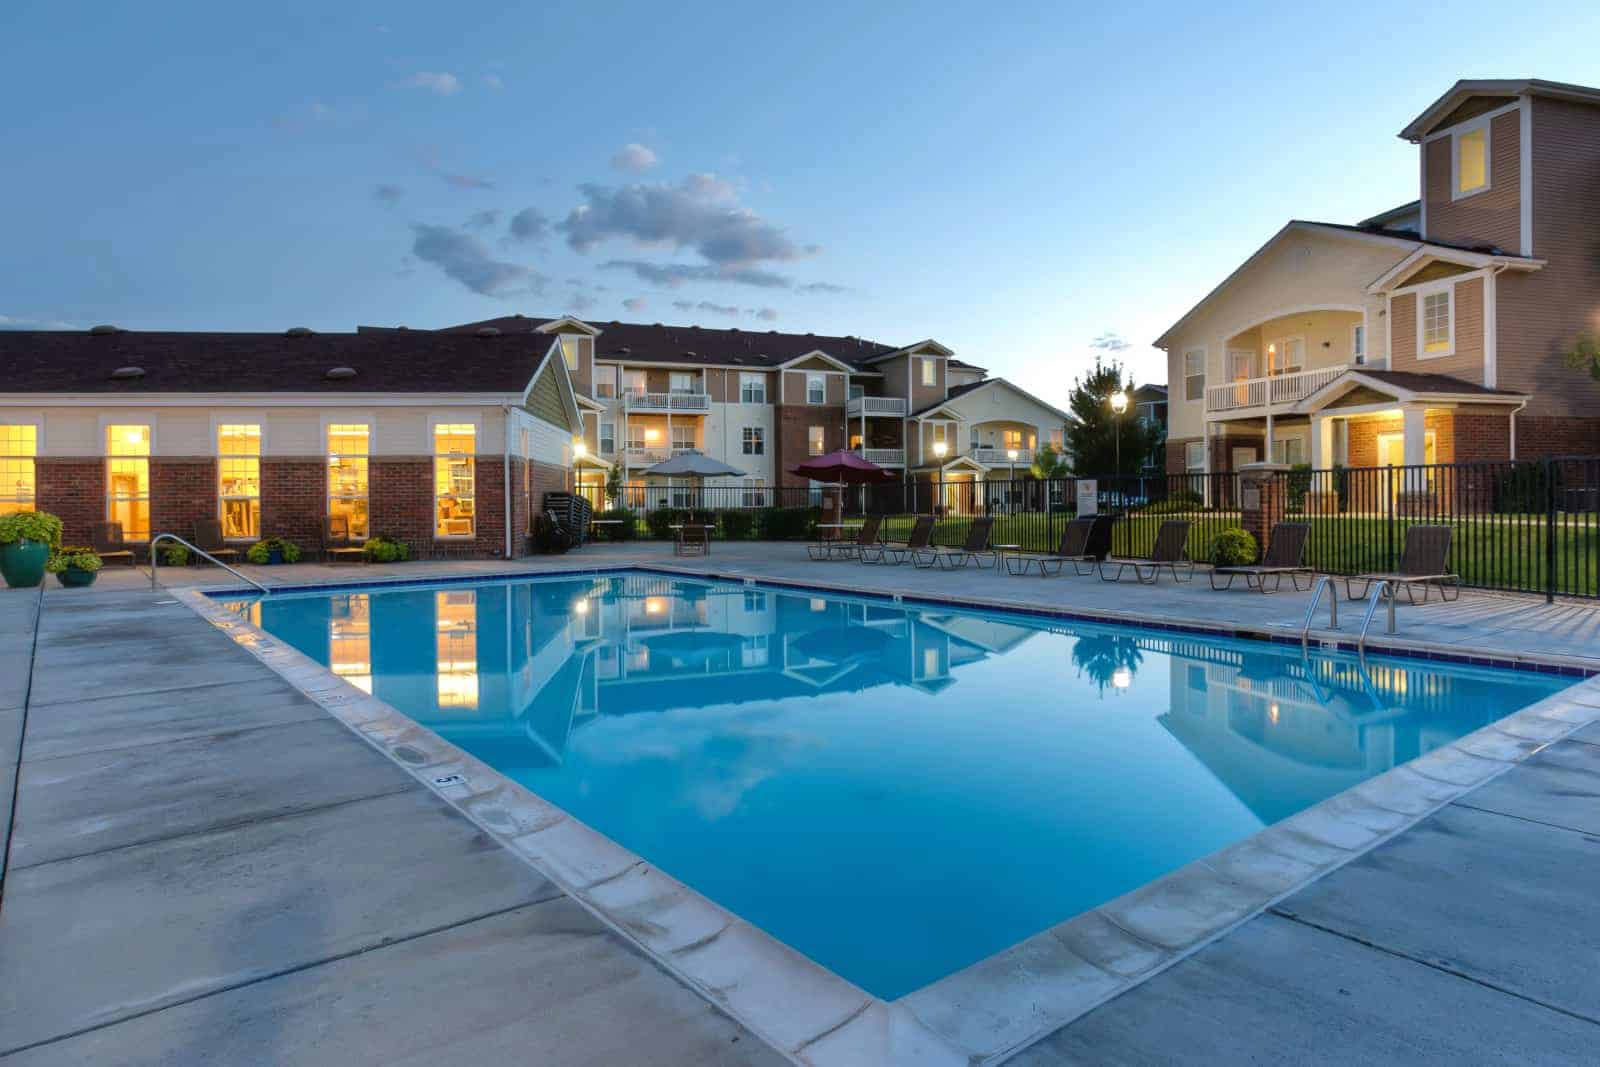 Exterior of swimming pool with apartment complex in background.